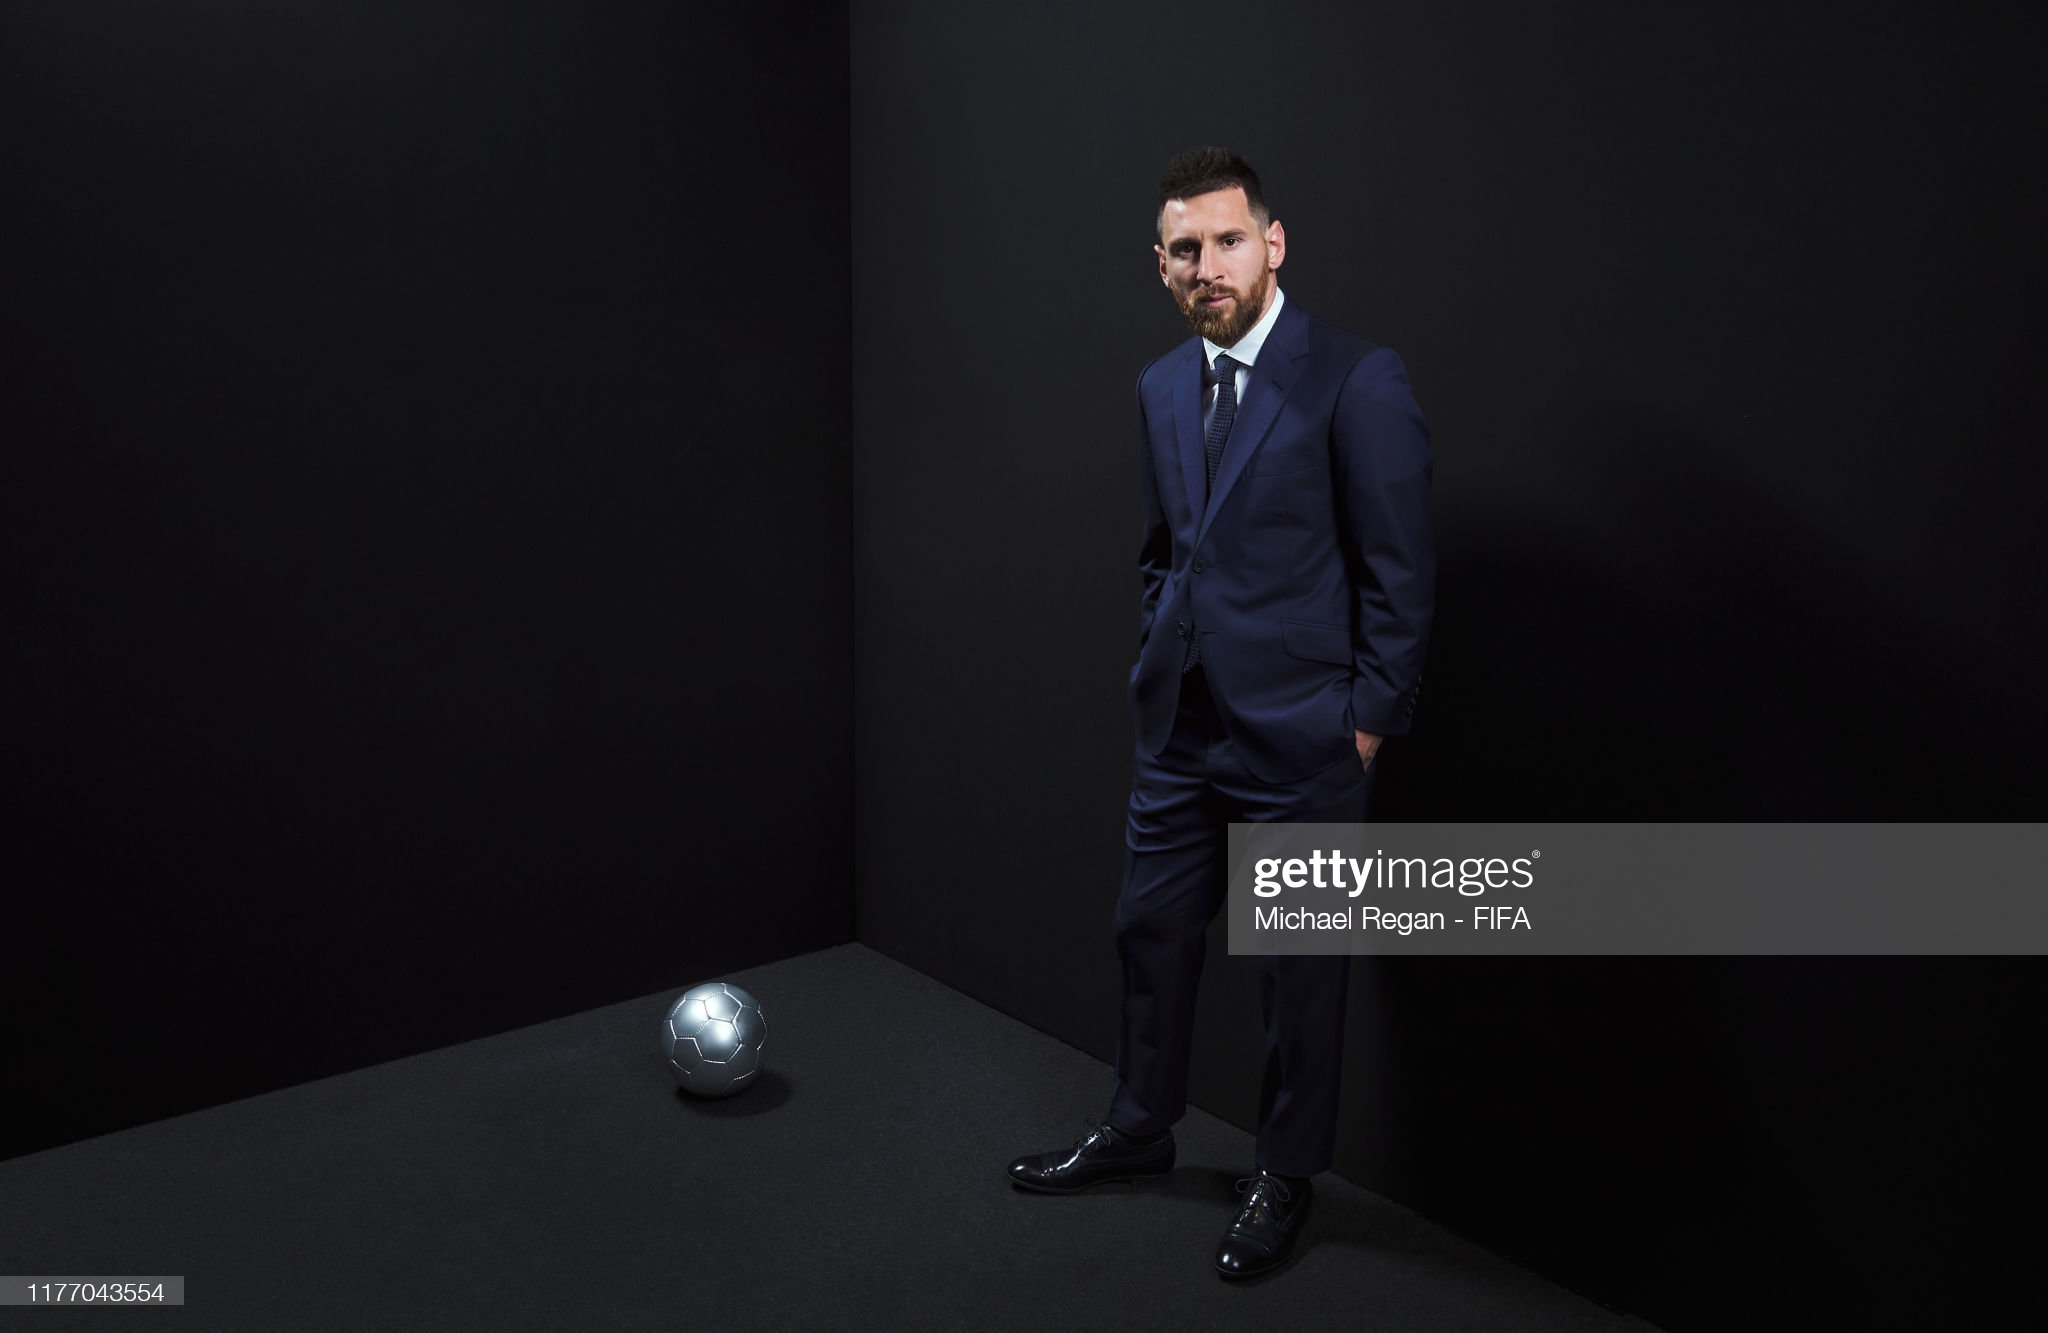 The Best FIFA Football Awards 2019 Lionel-messi-of-fc-barcelona-and-argentina-poses-for-a-portrait-in-picture-id1177043554?s=2048x2048